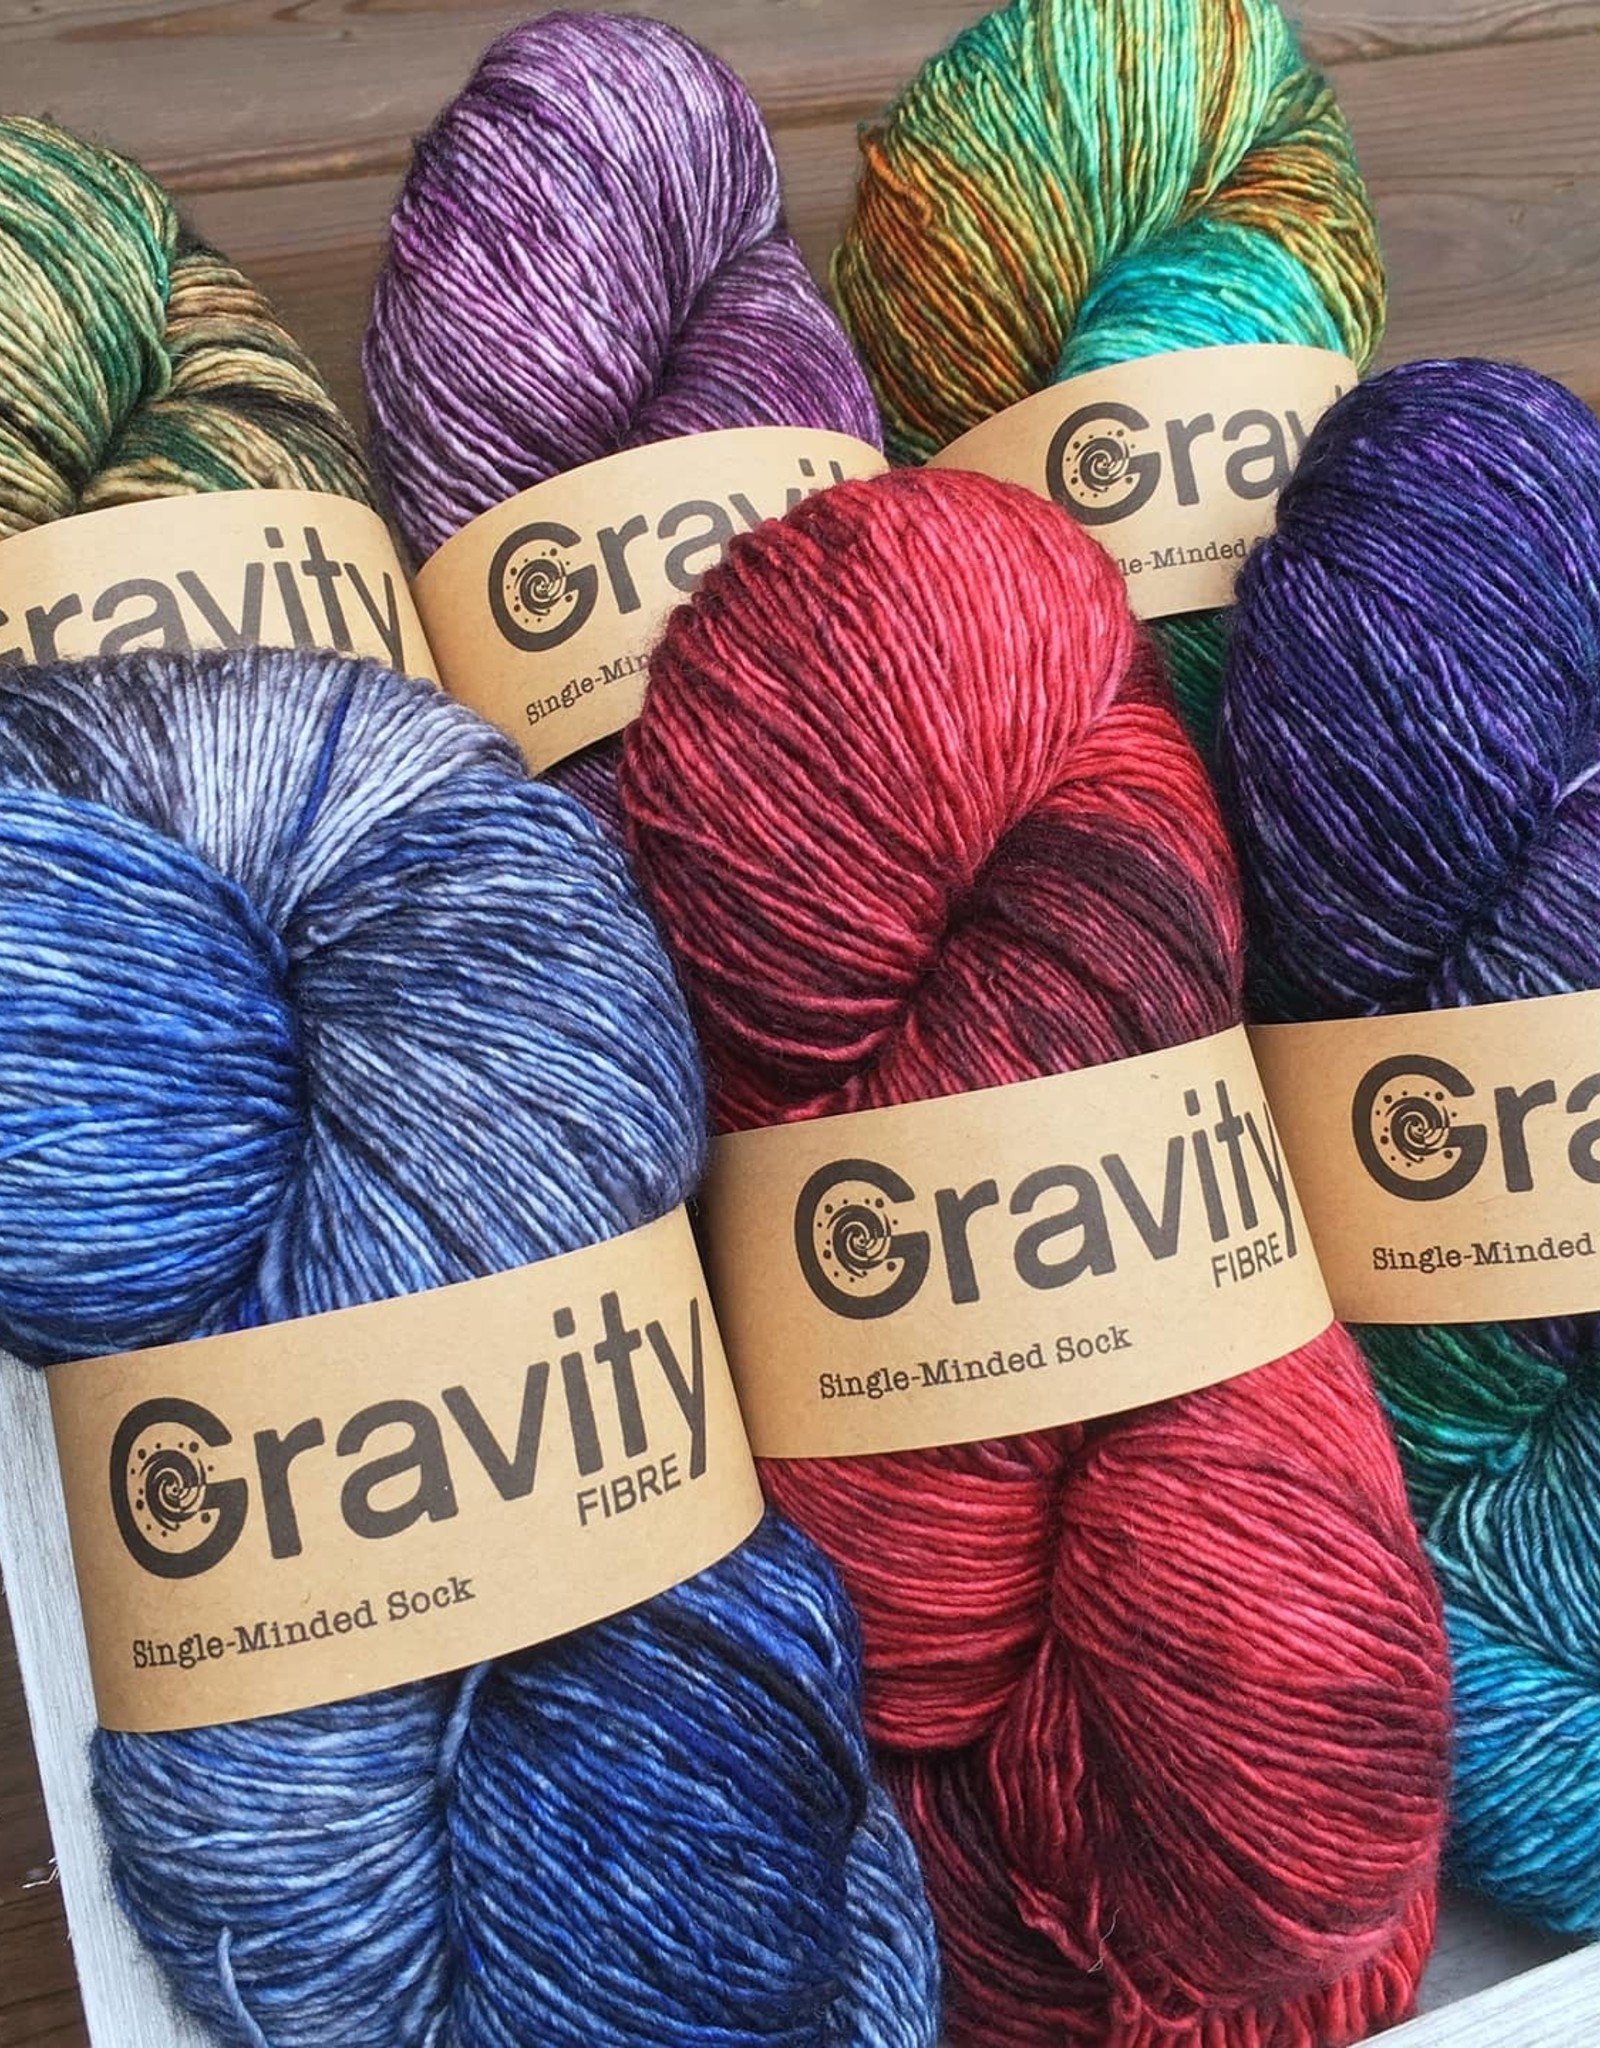 Gravity Fibre Single-Minded Sock